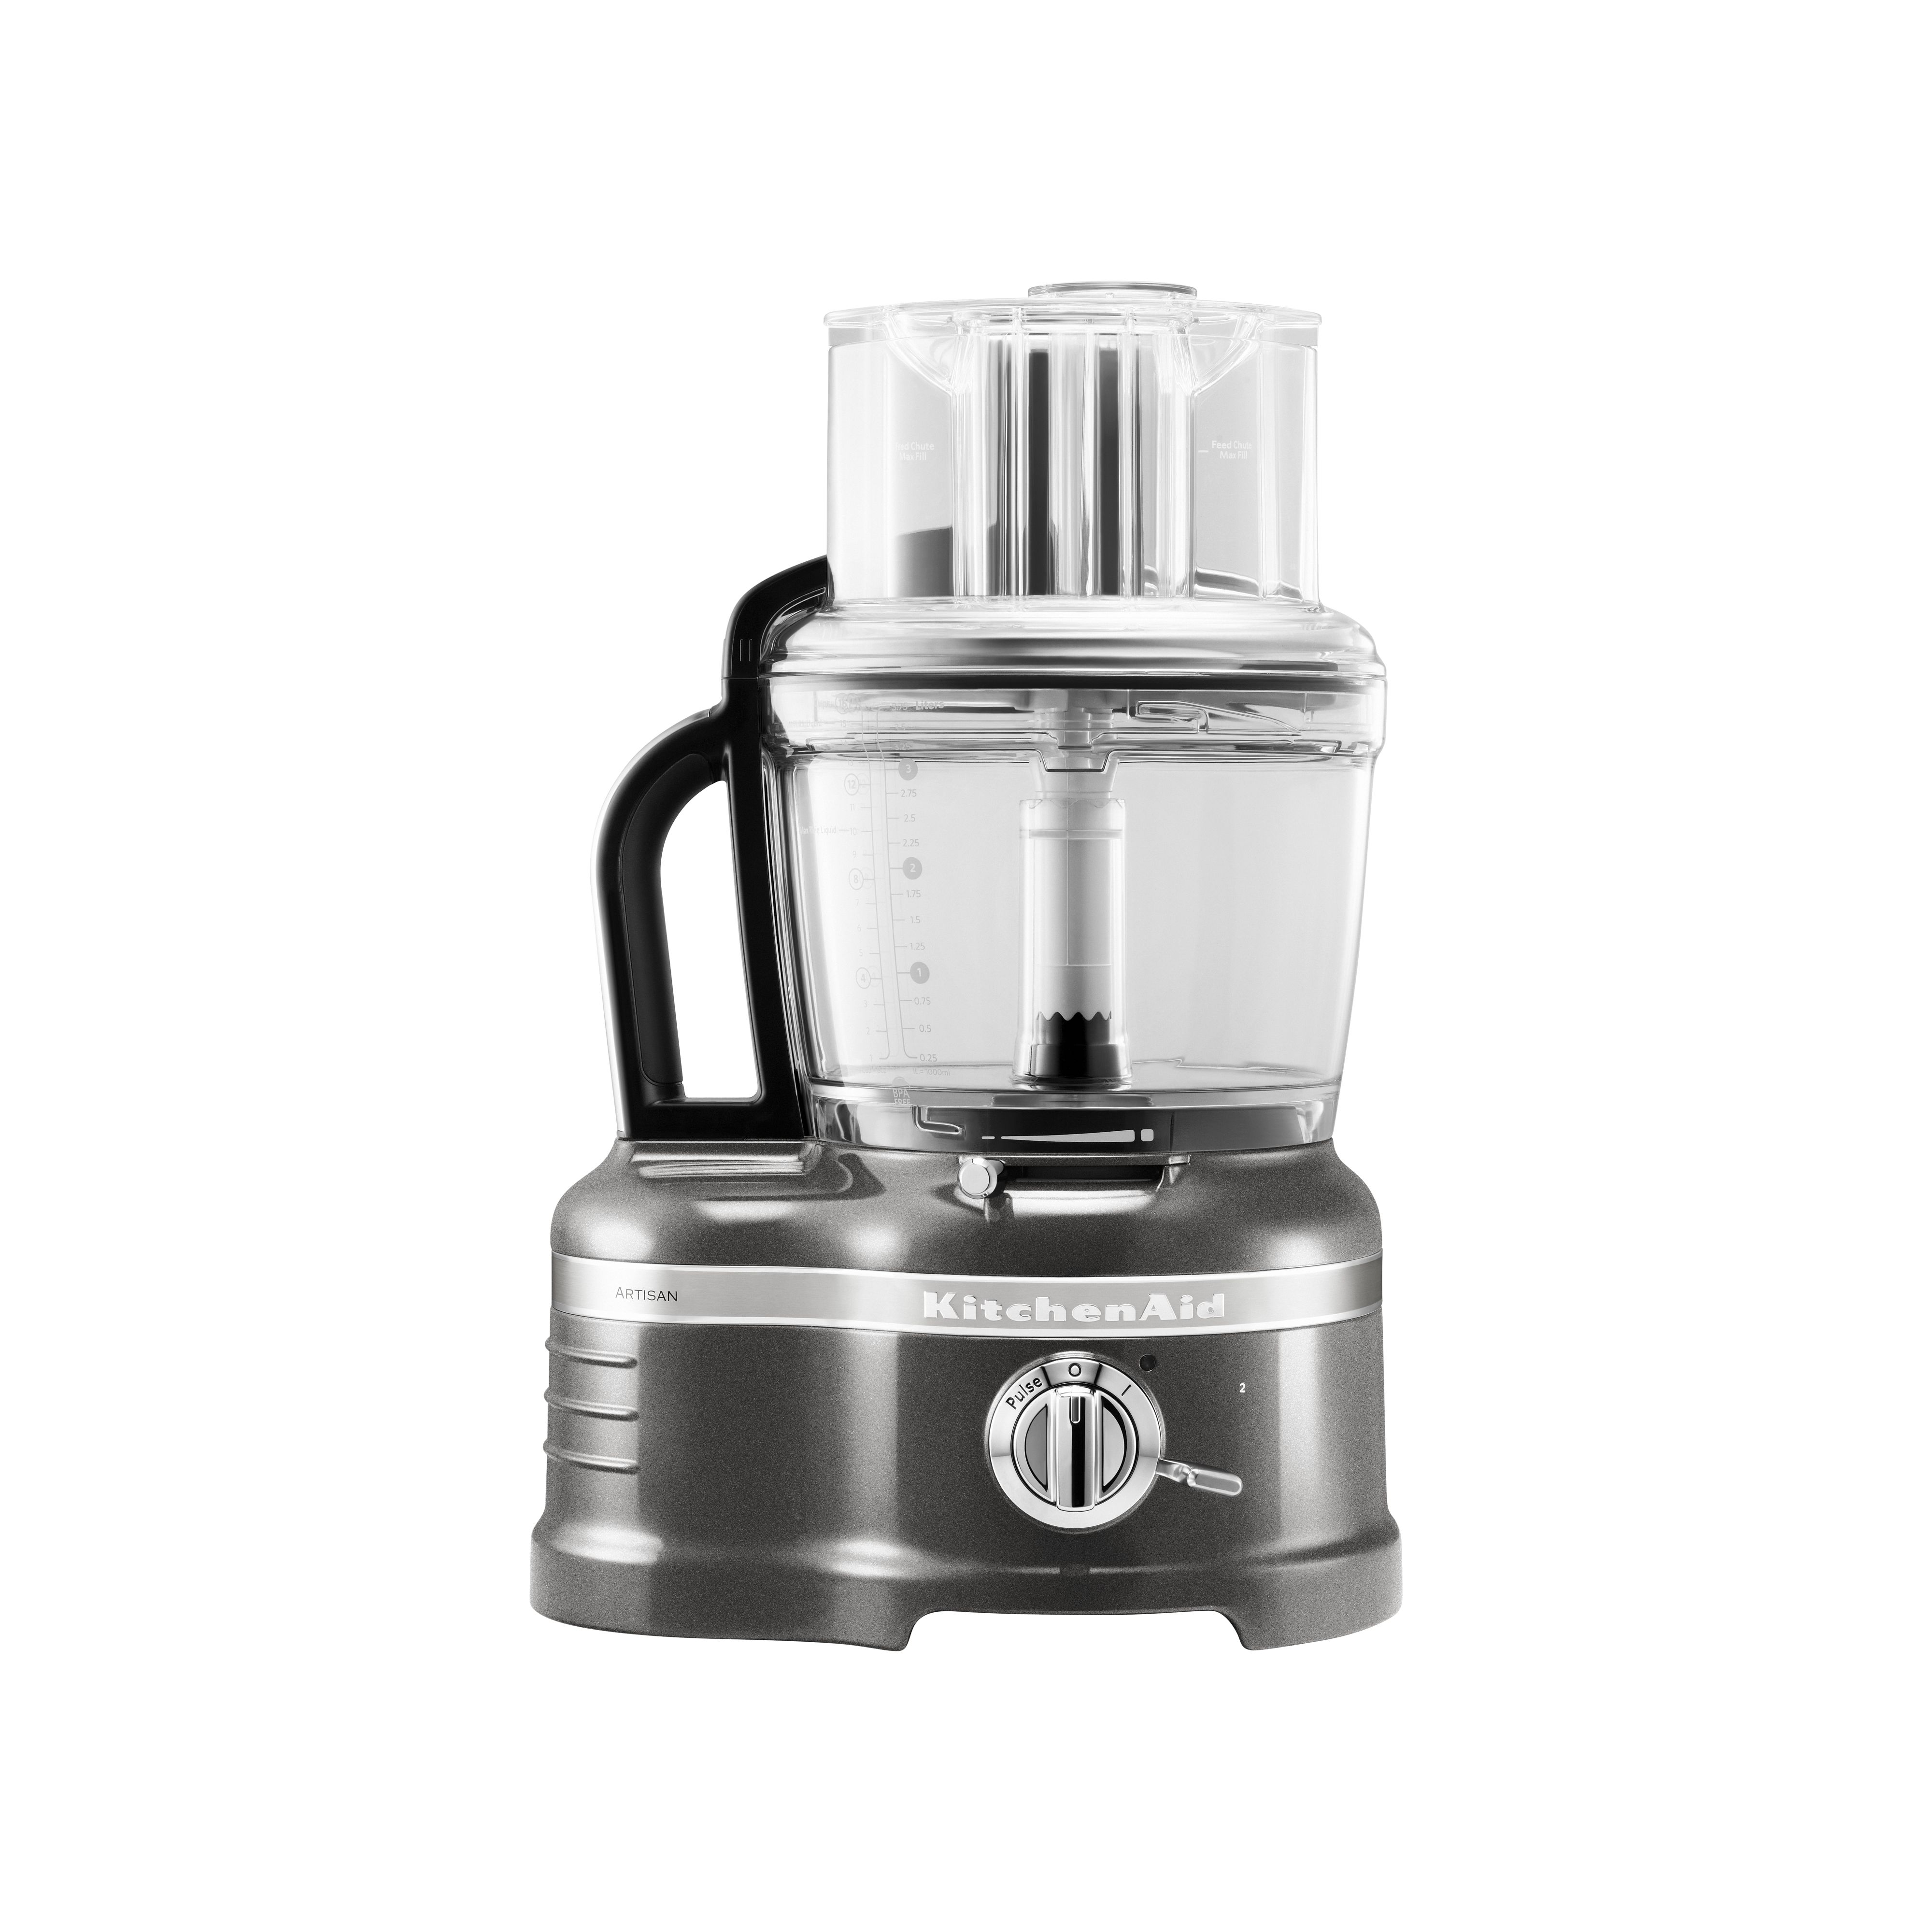 4L Artisan medallion silver food processor